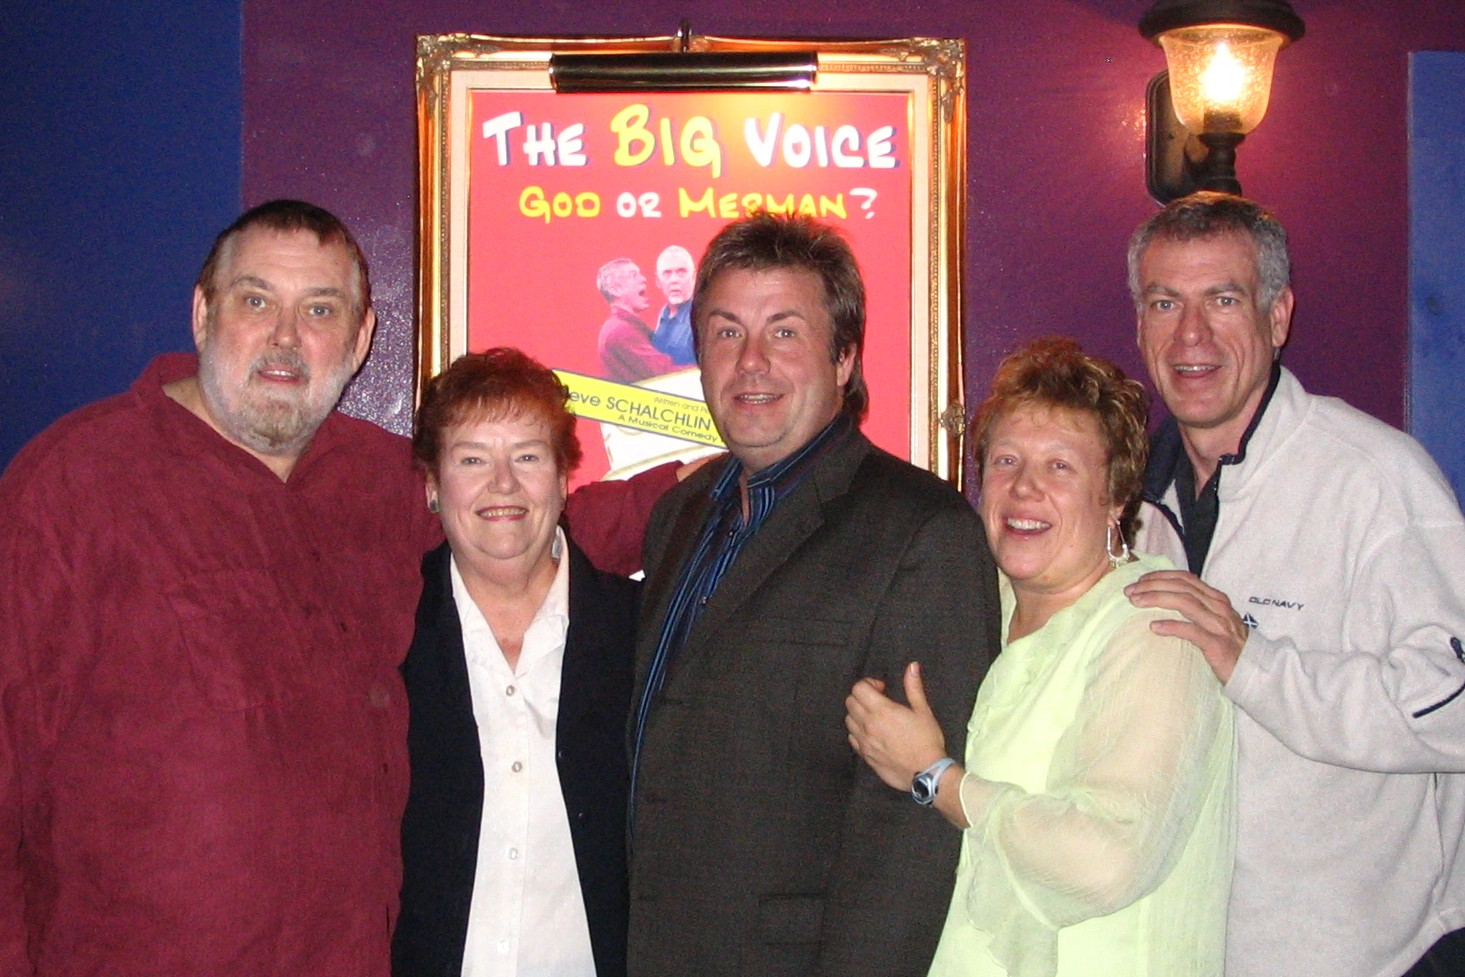 Jim, Janet, Brett, Karen and Steve at The Big Voice: God or Merman